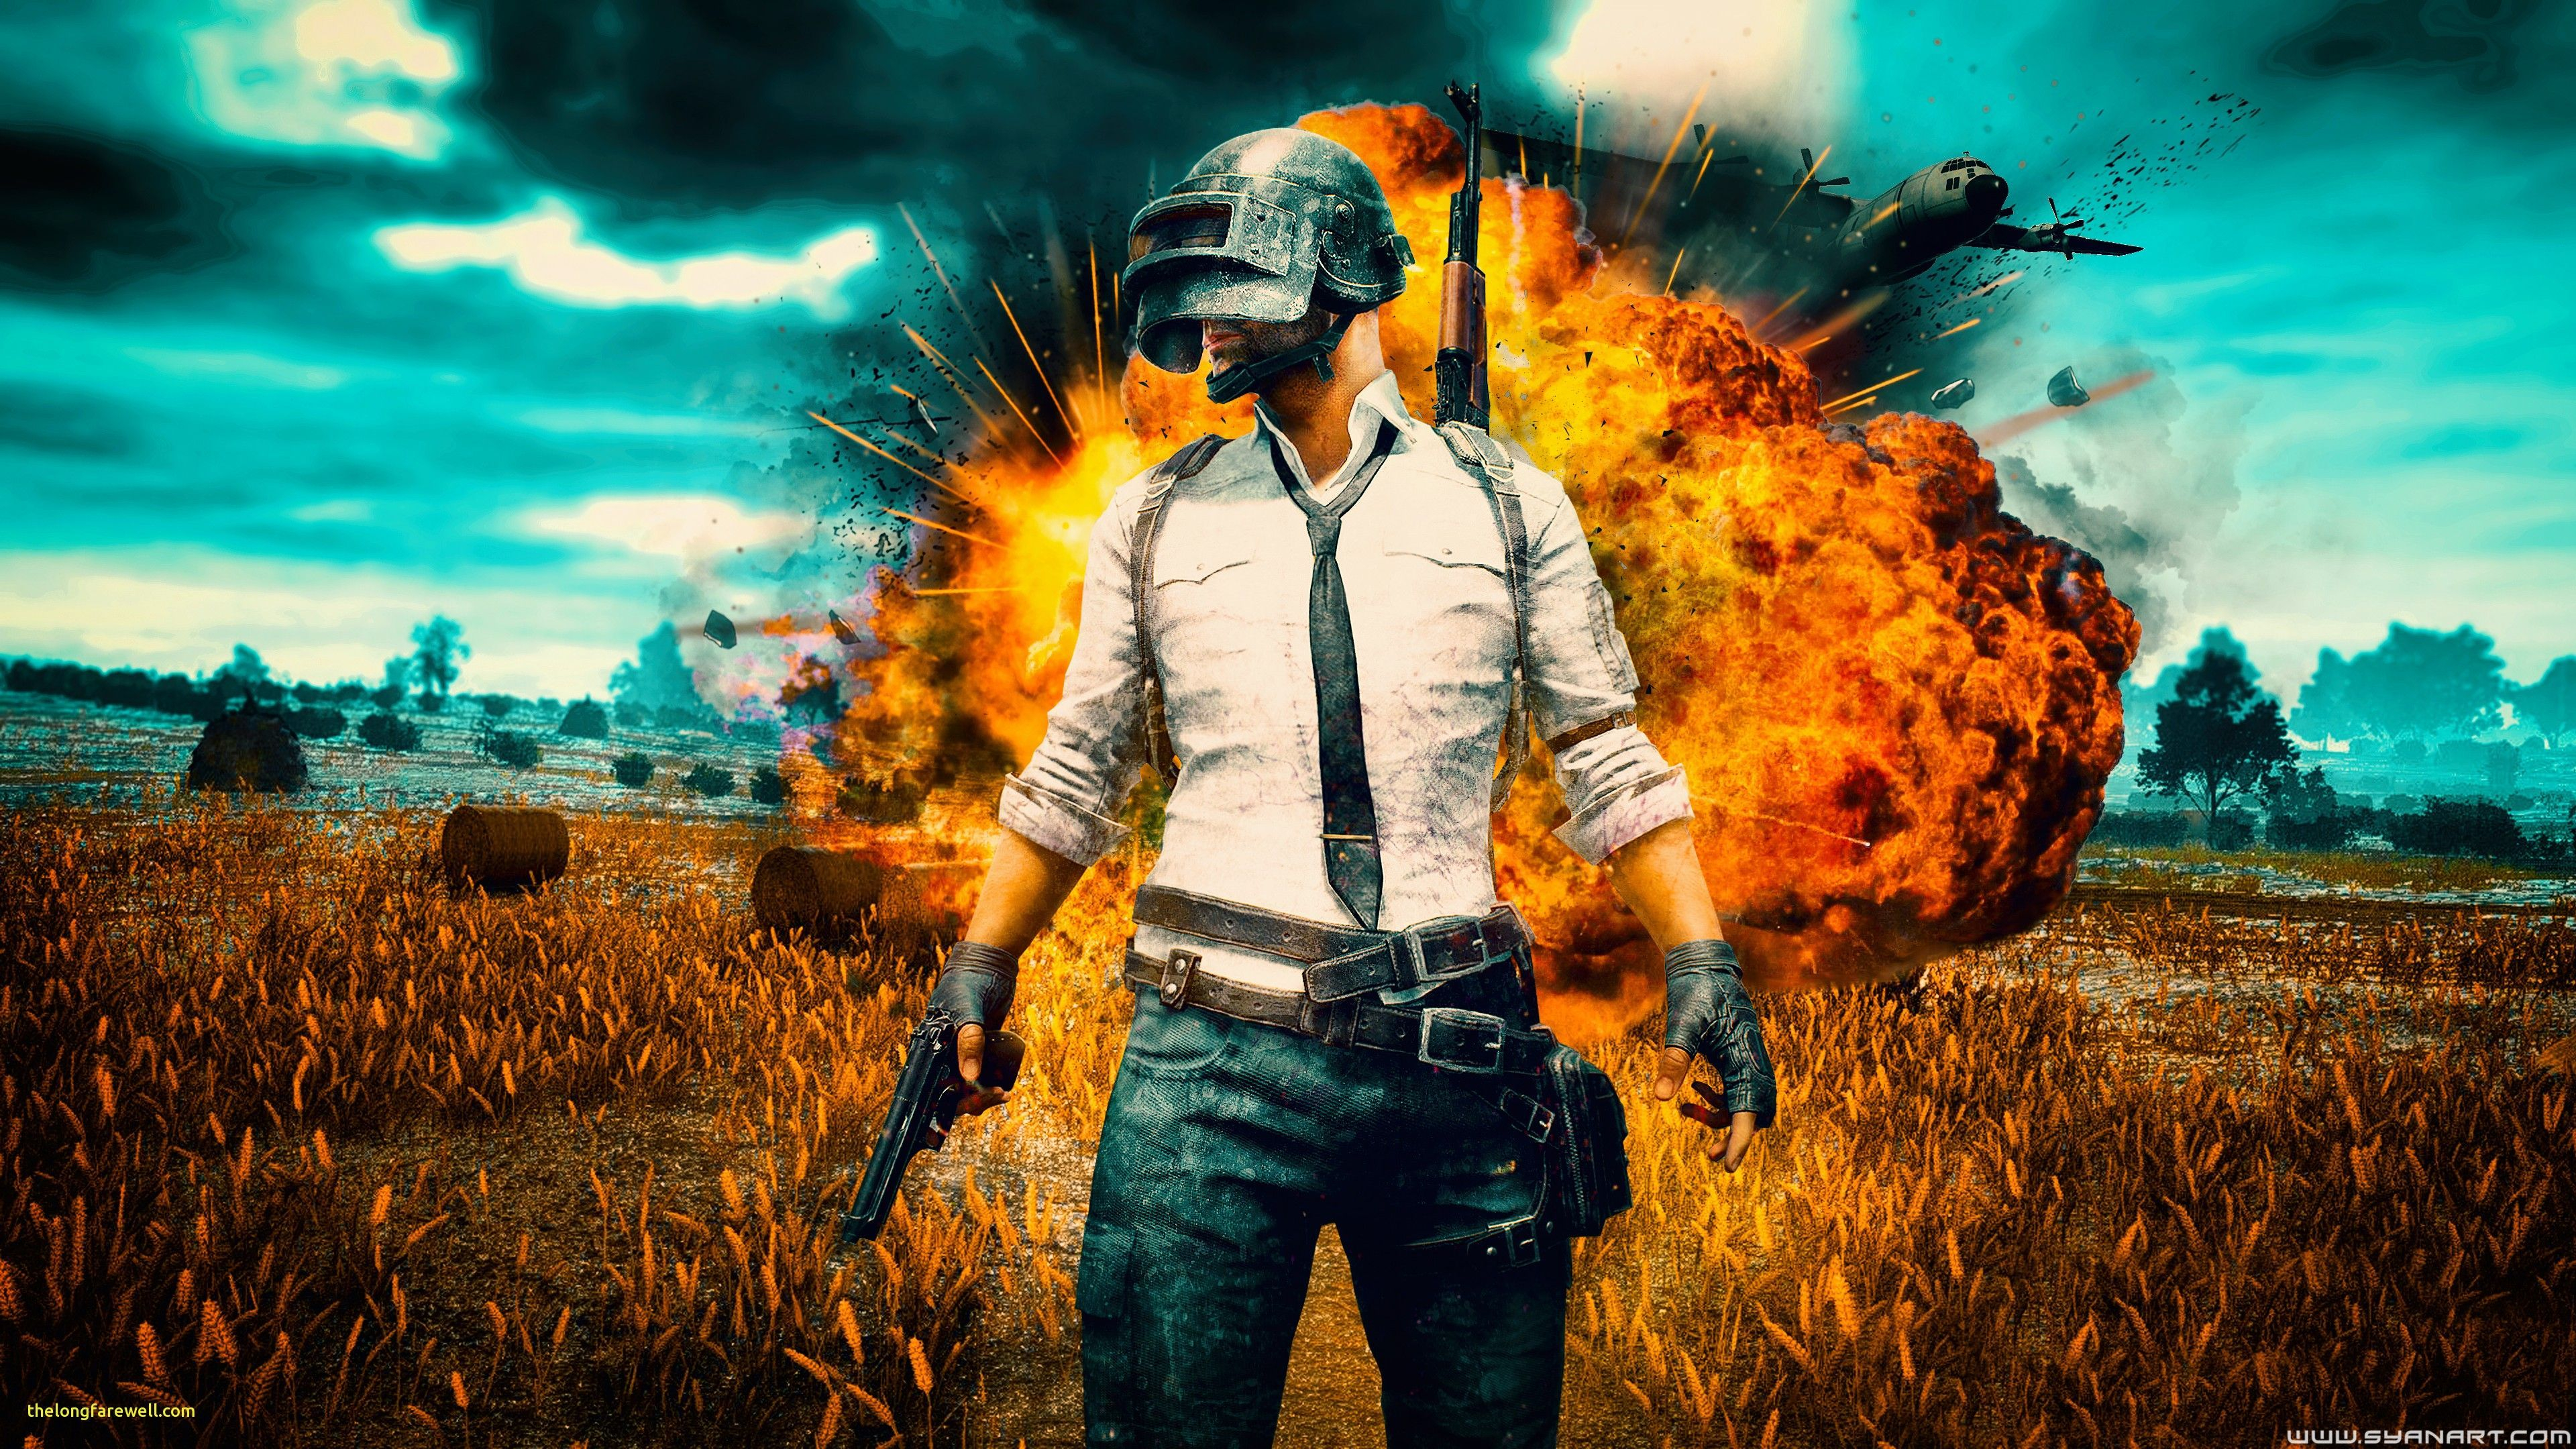 Player Unknown S Battlegrounds Pubg 4k Pubg Wallpaper Phone Pubg